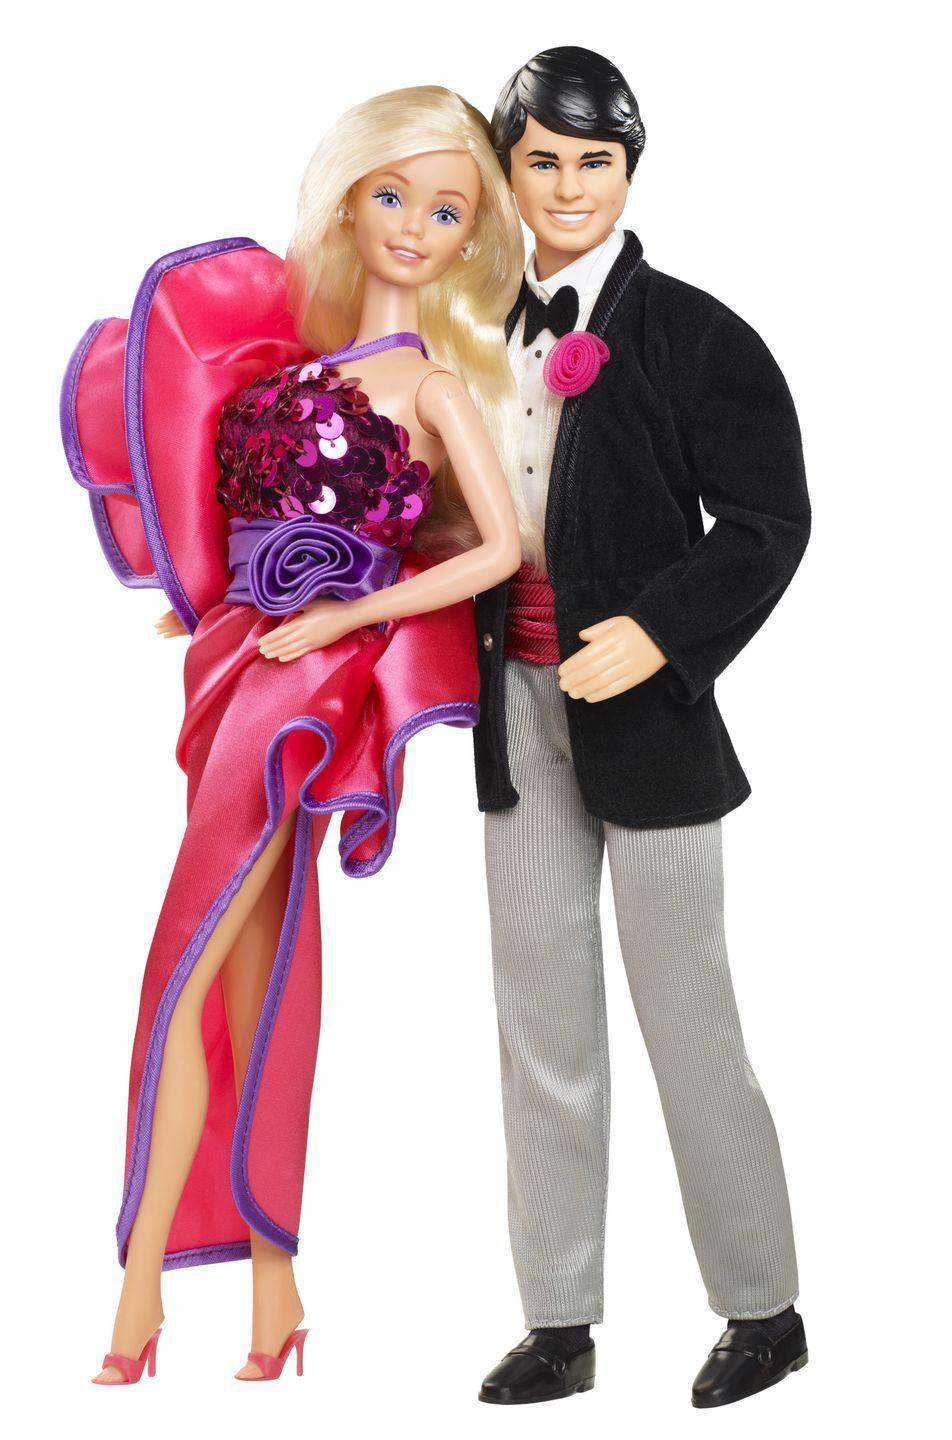 "<p>1983's Dream Date Barbie meets her match in a tuxedo-ed Ken (check out the contrast pants). </p><p><a href=""http://www.goodhousekeeping.com/life/entertainment/g3768/hot-80s-actors-where-are-they-now/"" rel=""nofollow noopener"" target=""_blank"" data-ylk=""slk:'80s heartthrobs then and now »"" class=""link rapid-noclick-resp""><em>'80s heartthrobs then and now »</em></a></p>"